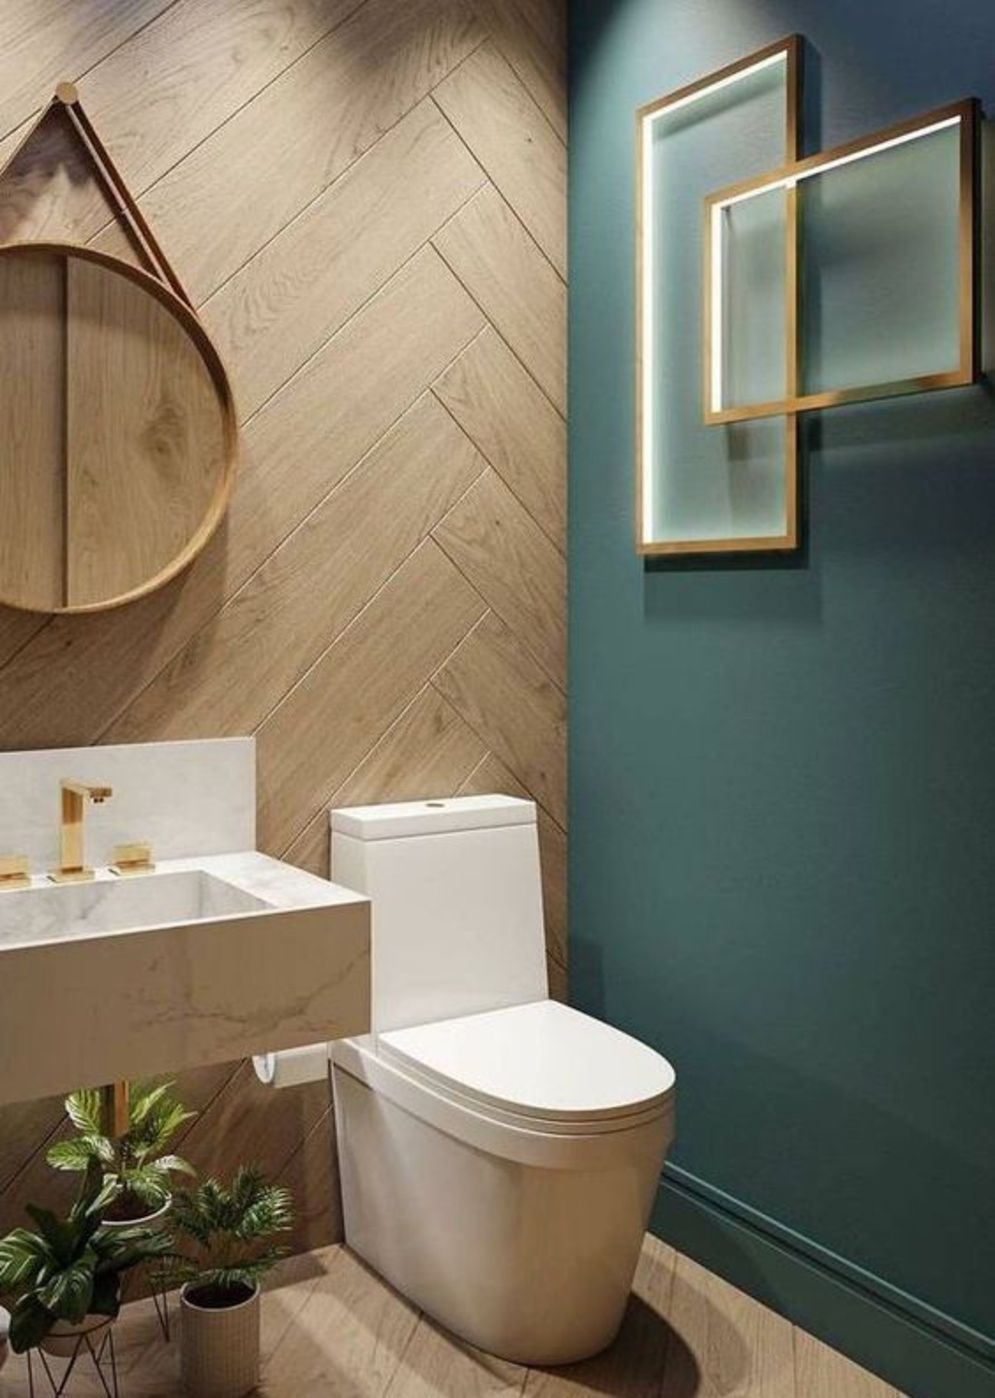 Timeless bathroom designs with wood accents enhancing more natural vibes Image 40